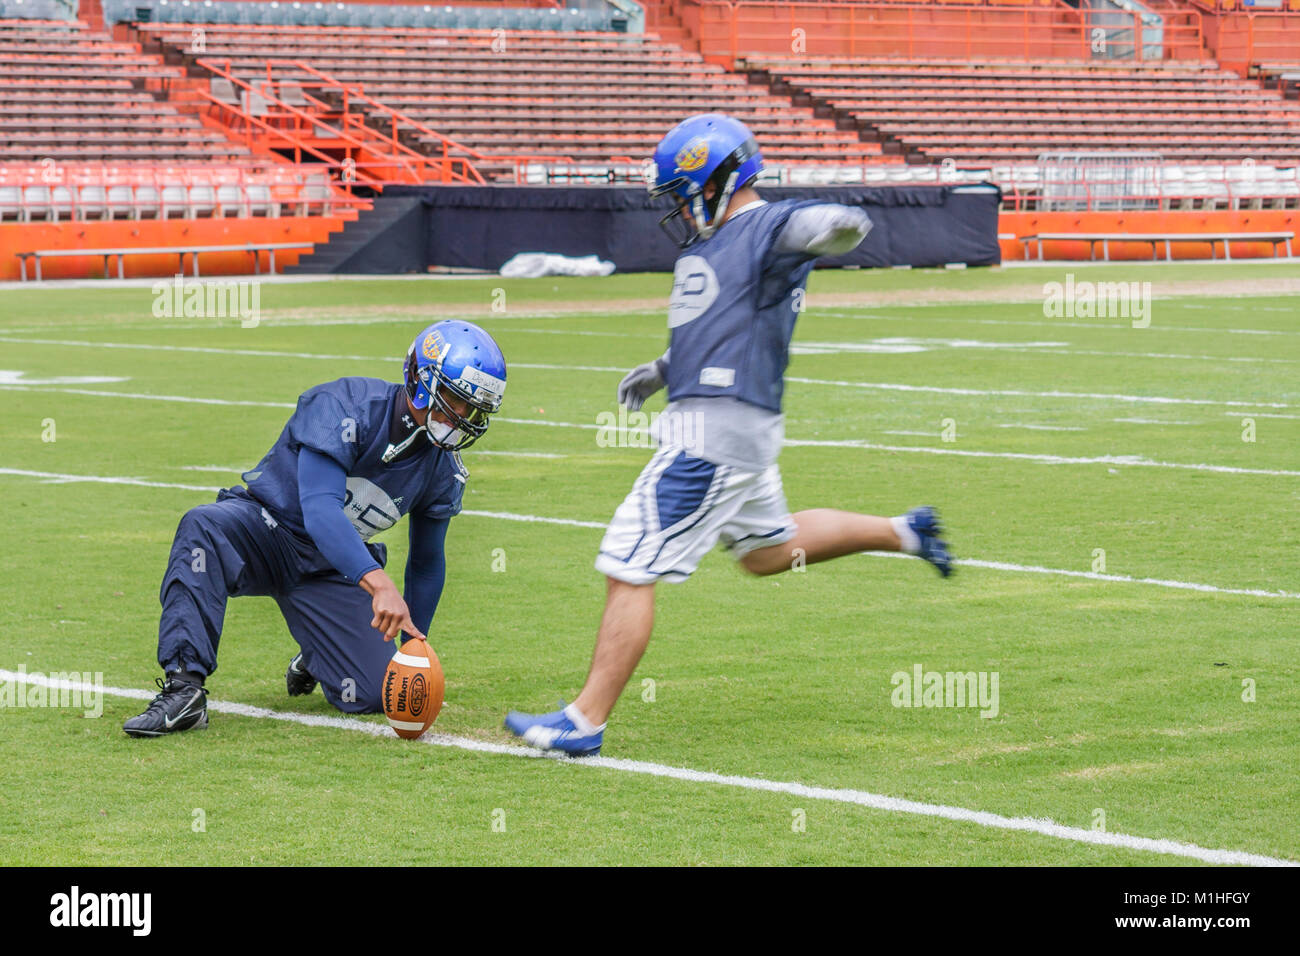 American Football Practice Kick Stock Photos American